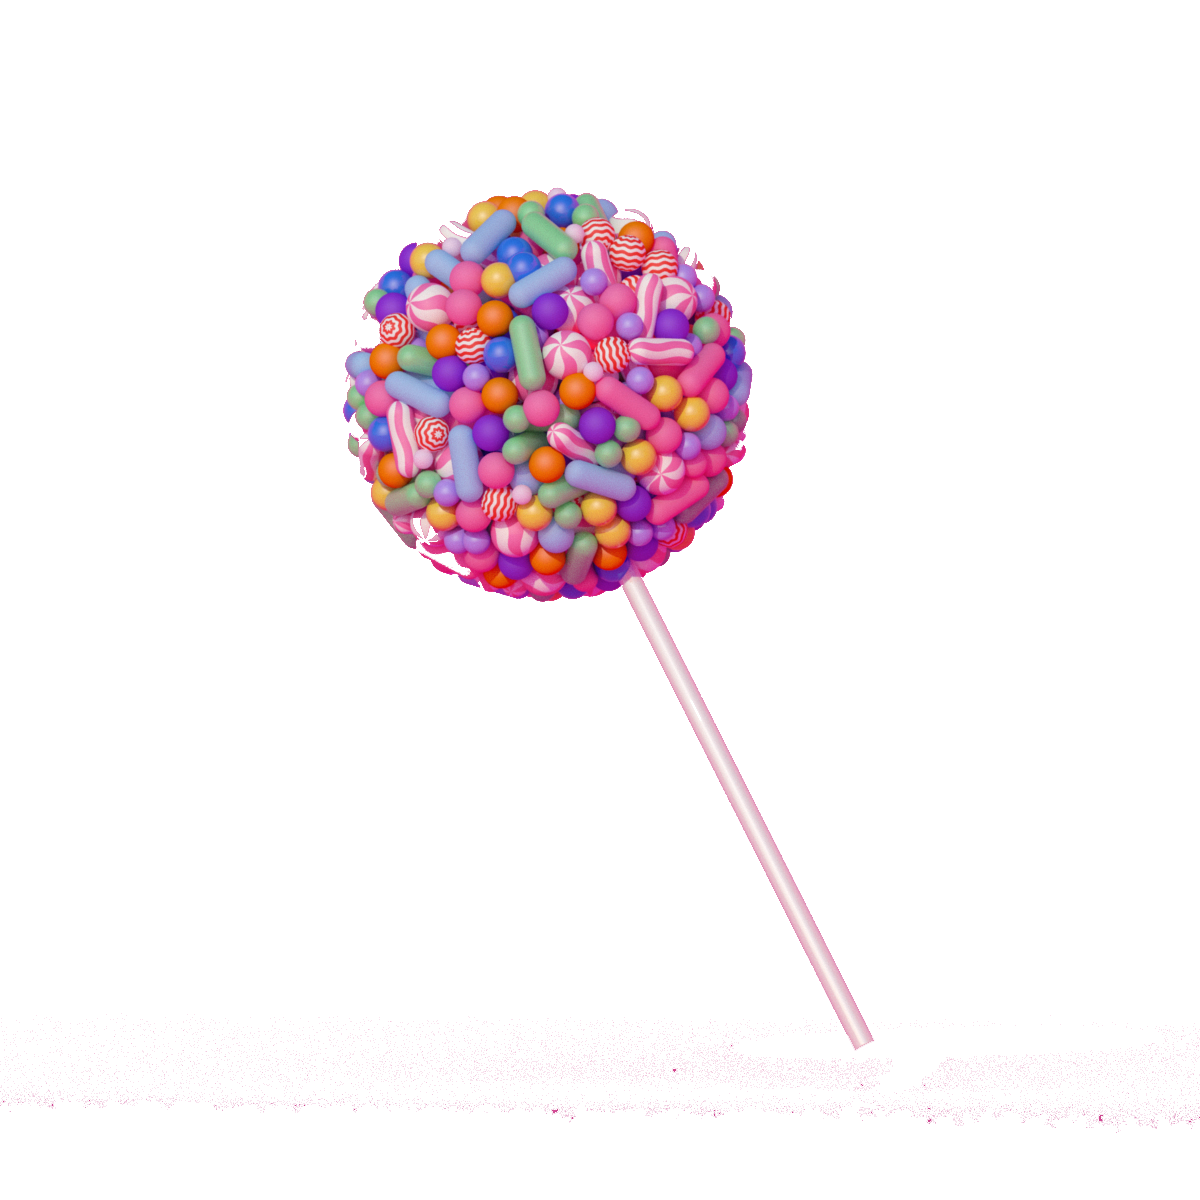 Drawing candy creative. Lollipop creativity download stereoscopic